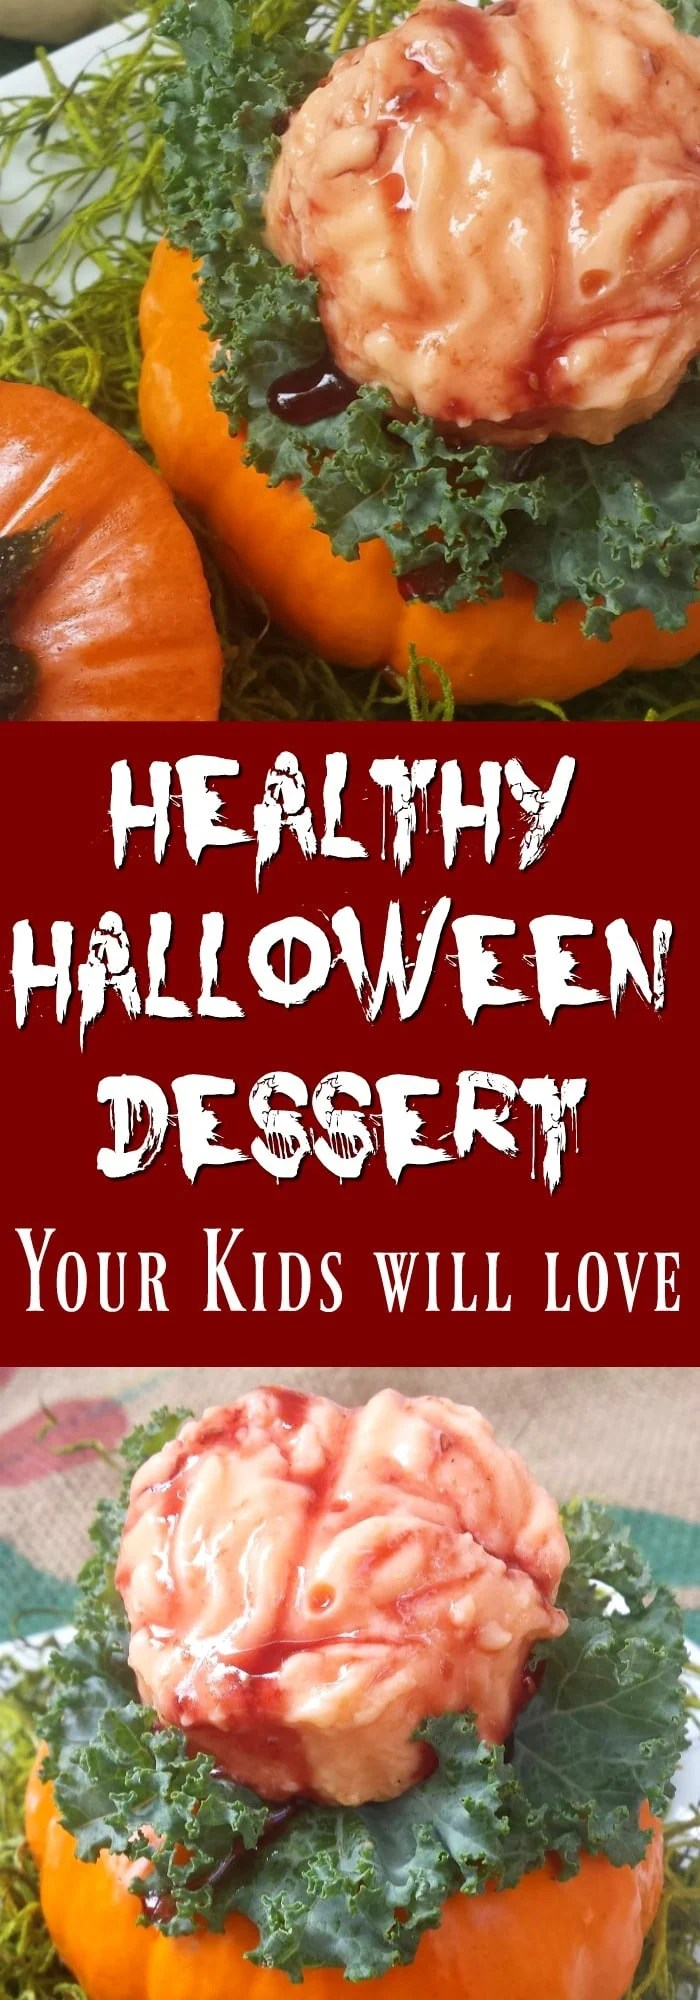 Healthy Halloween Dessert Your Kids Will Love